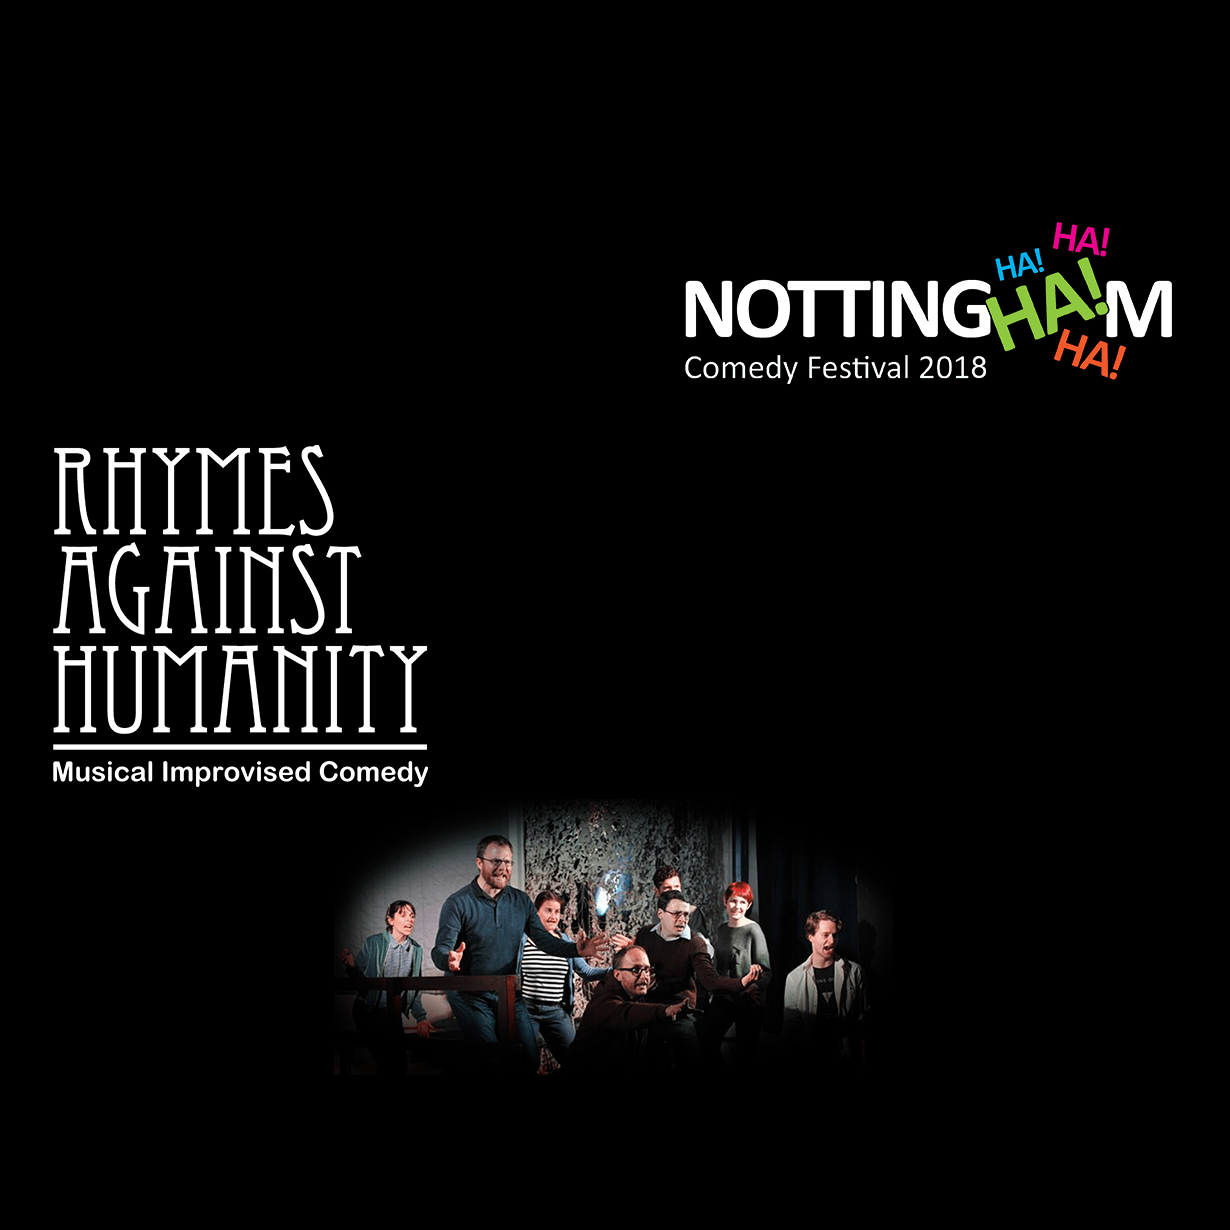 Rhymes Against Humanity - Nottingham Comedy Festival